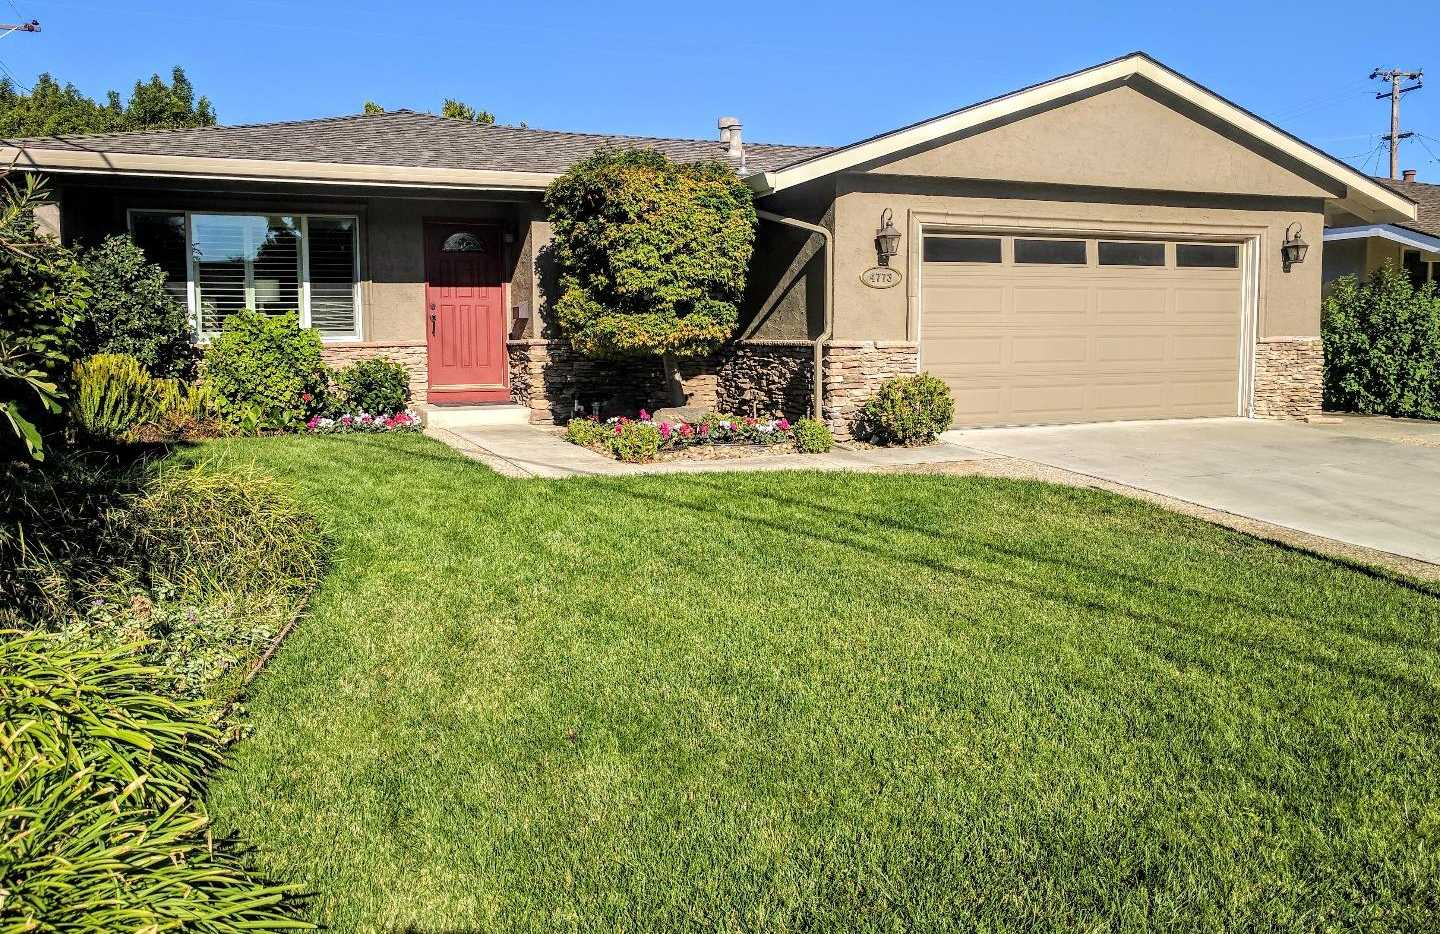 $1,599,000 - 3Br/2Ba -  for Sale in San Jose